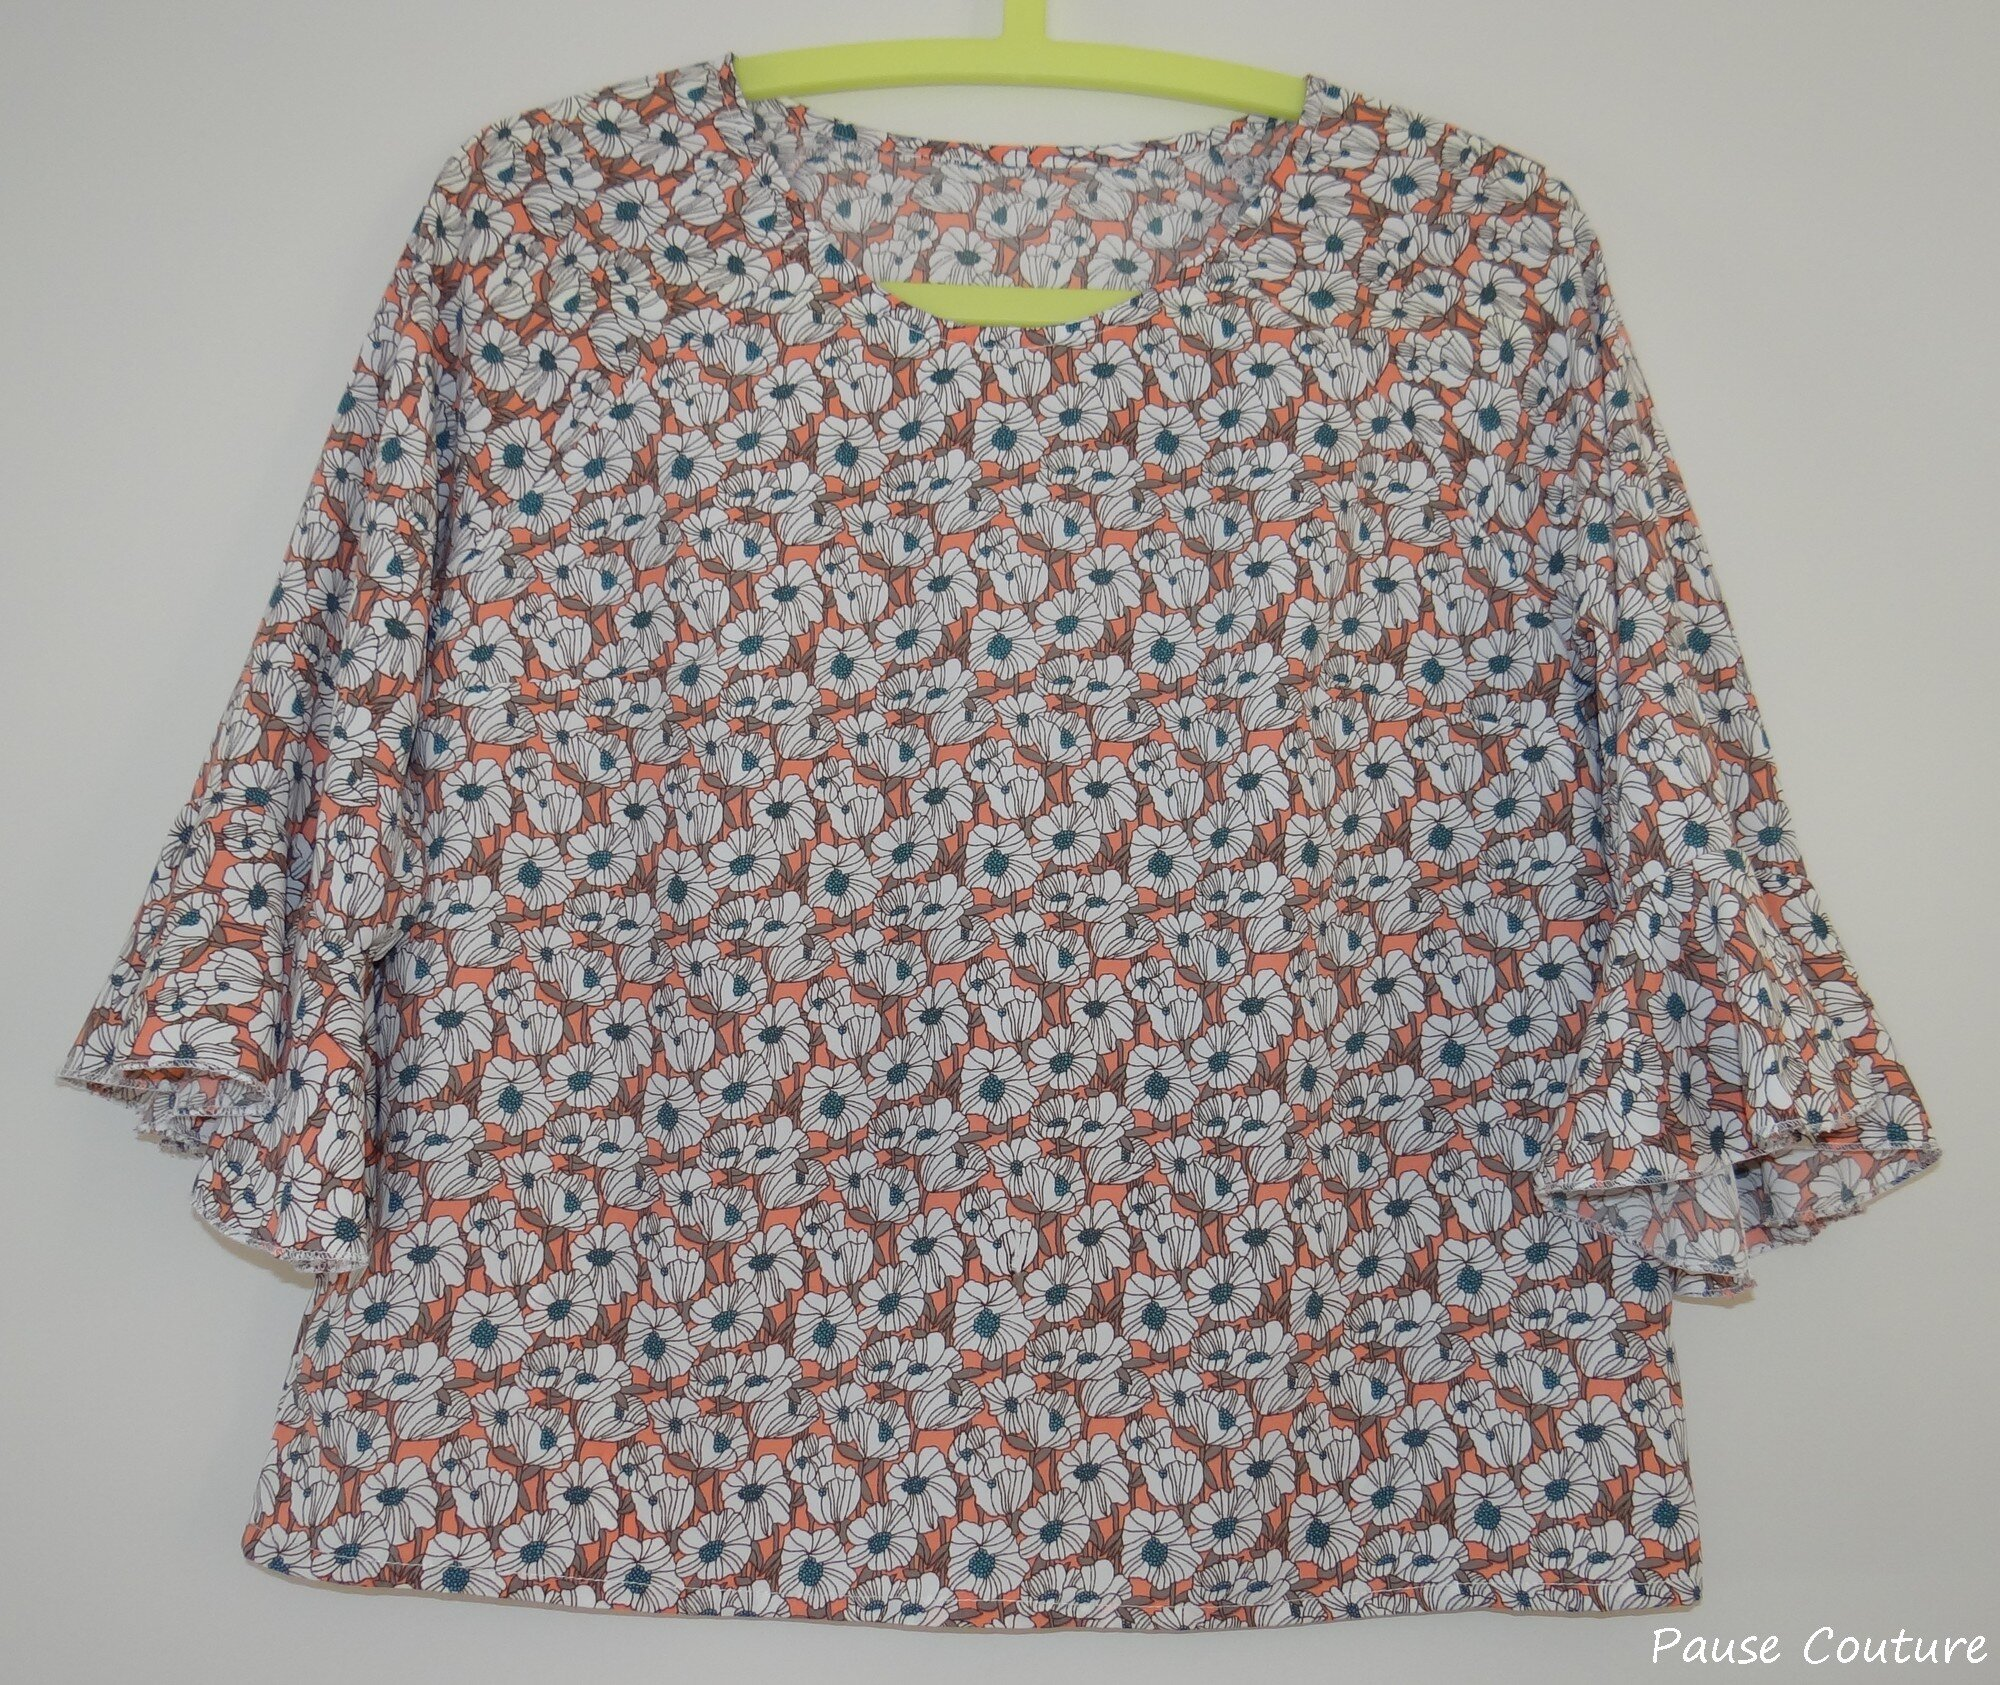 Blouse Pause Couture Chqdxbtsr Scammit Stockholm Atelier mIfv76yYbg